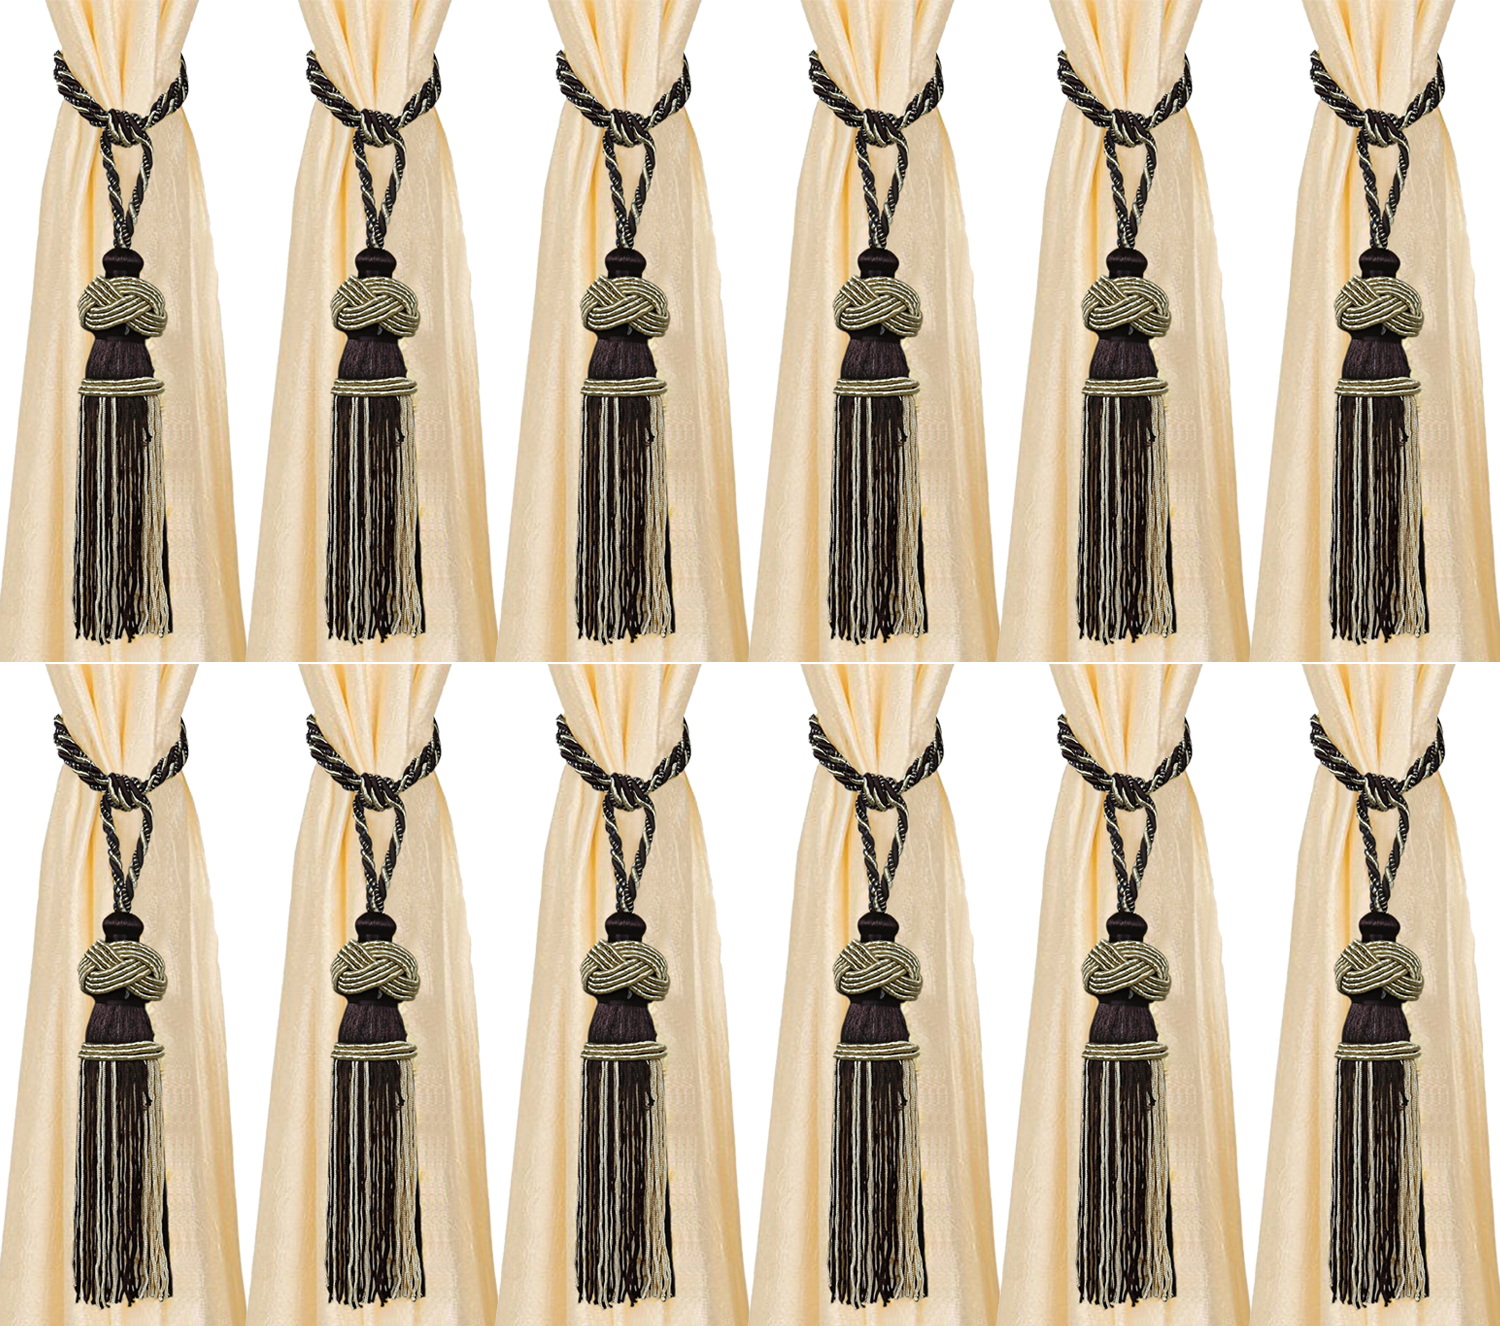 Kuber Industries Polyester 12 Pieces Curtain Tie Back Tassel Set (Brown) -CTKTC12782